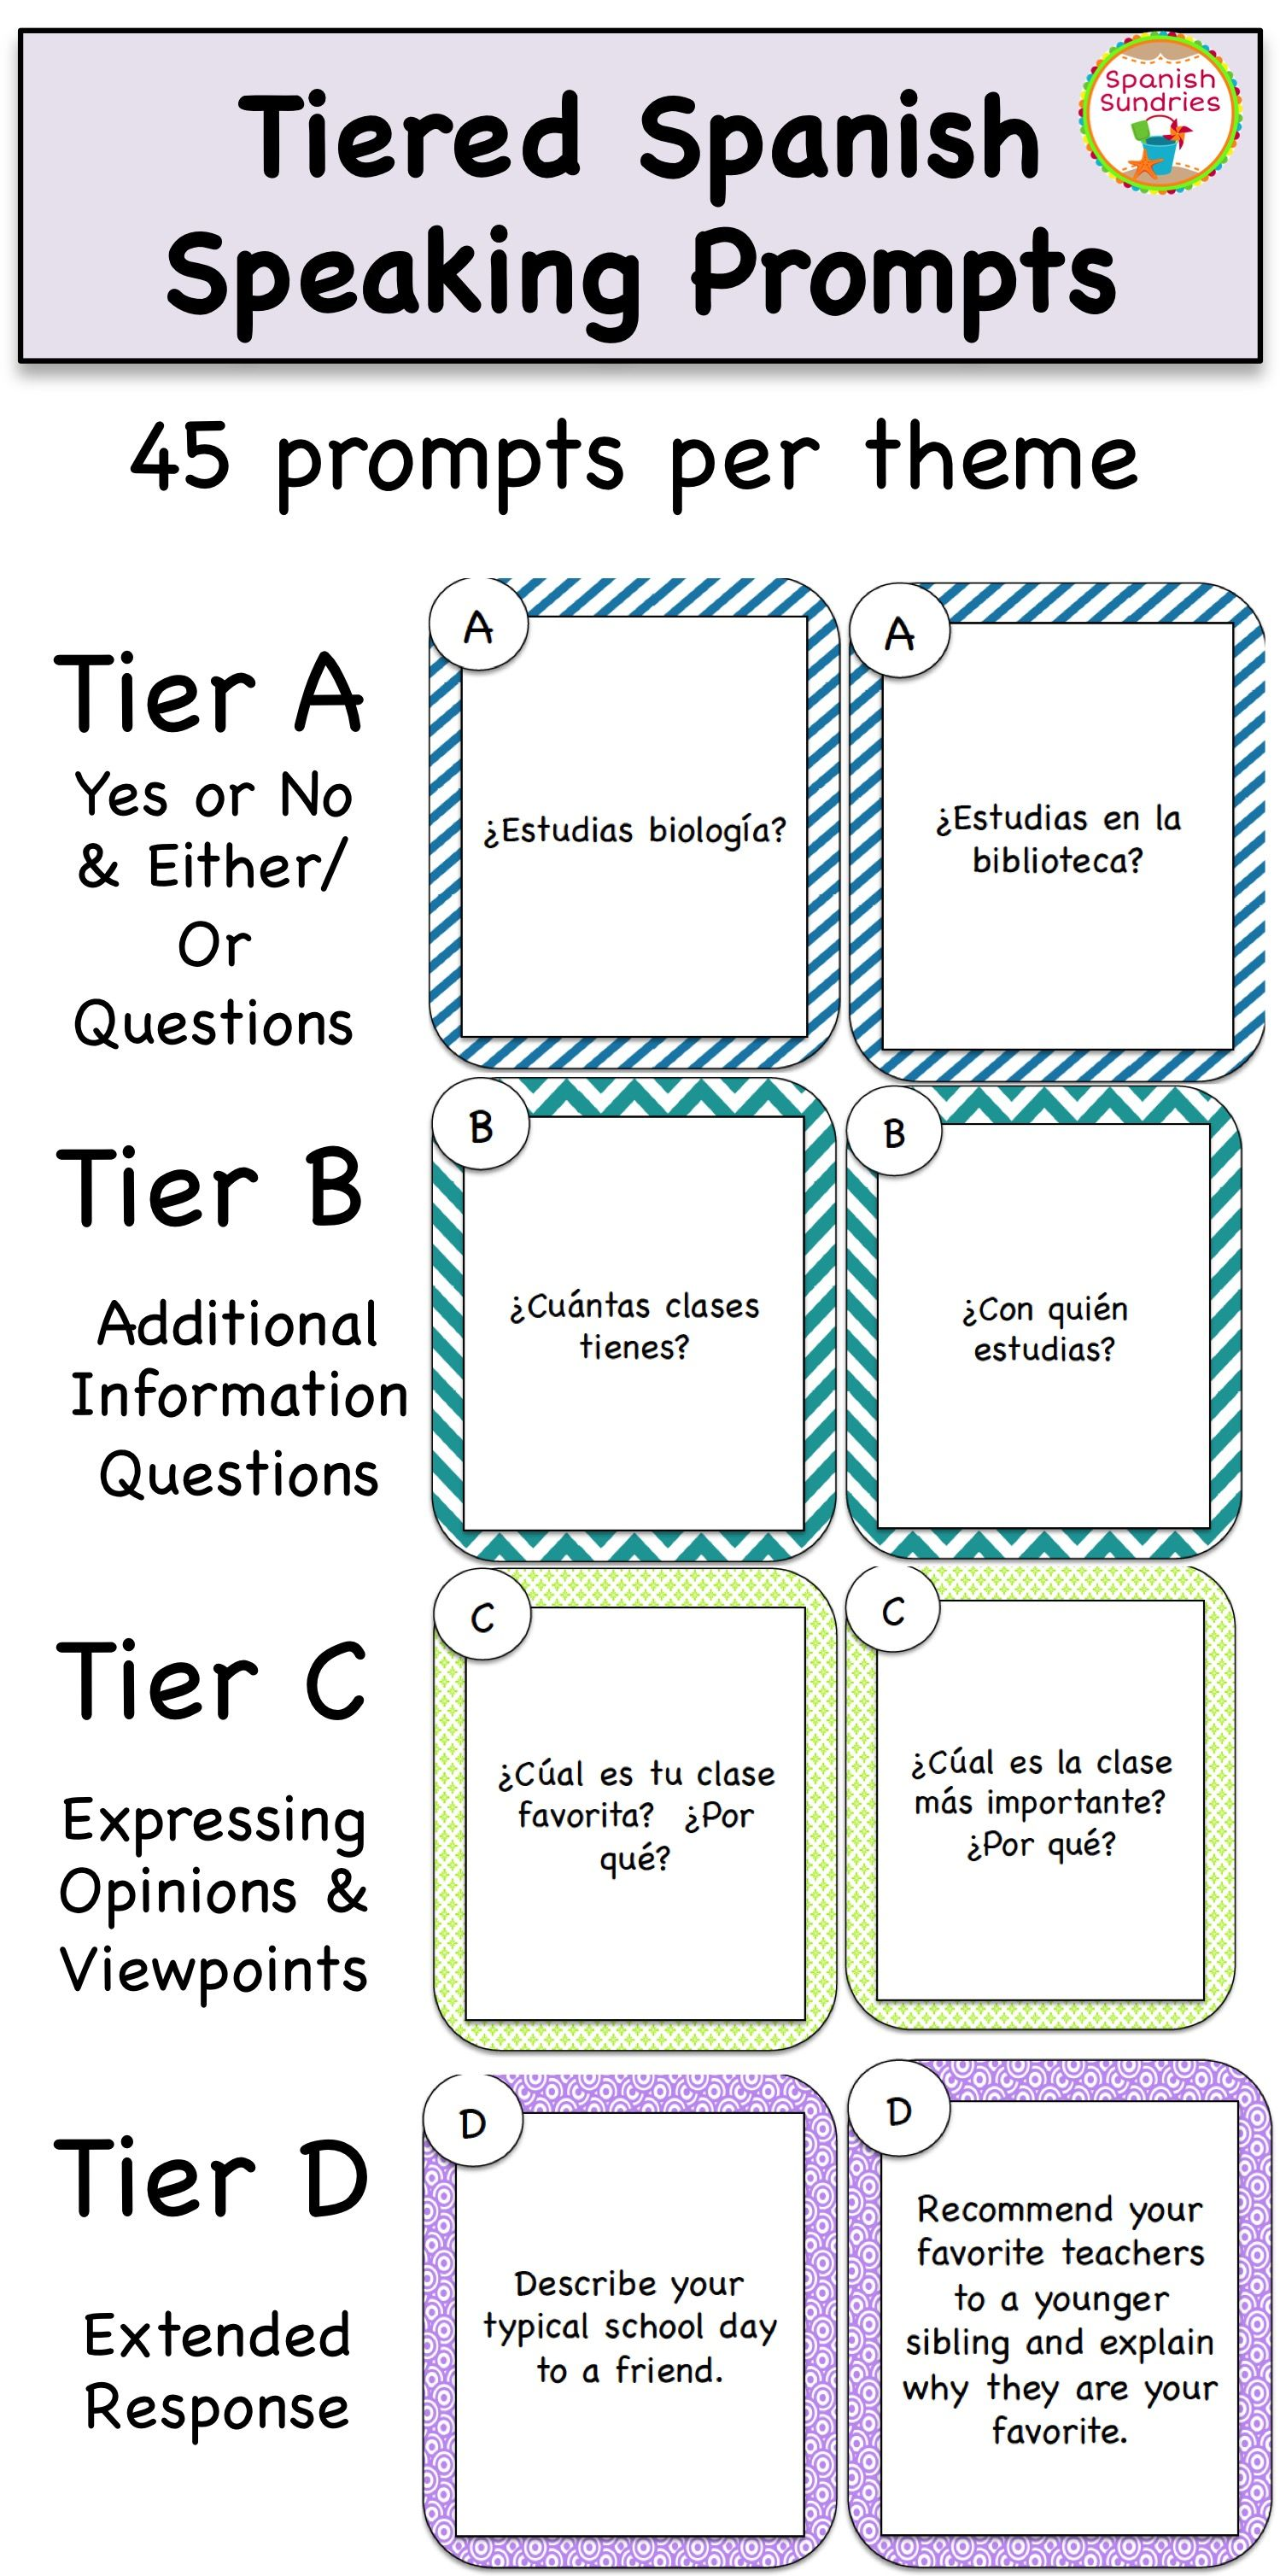 Tiered Spanish Speaking Prompts By Theme More Inspiration At